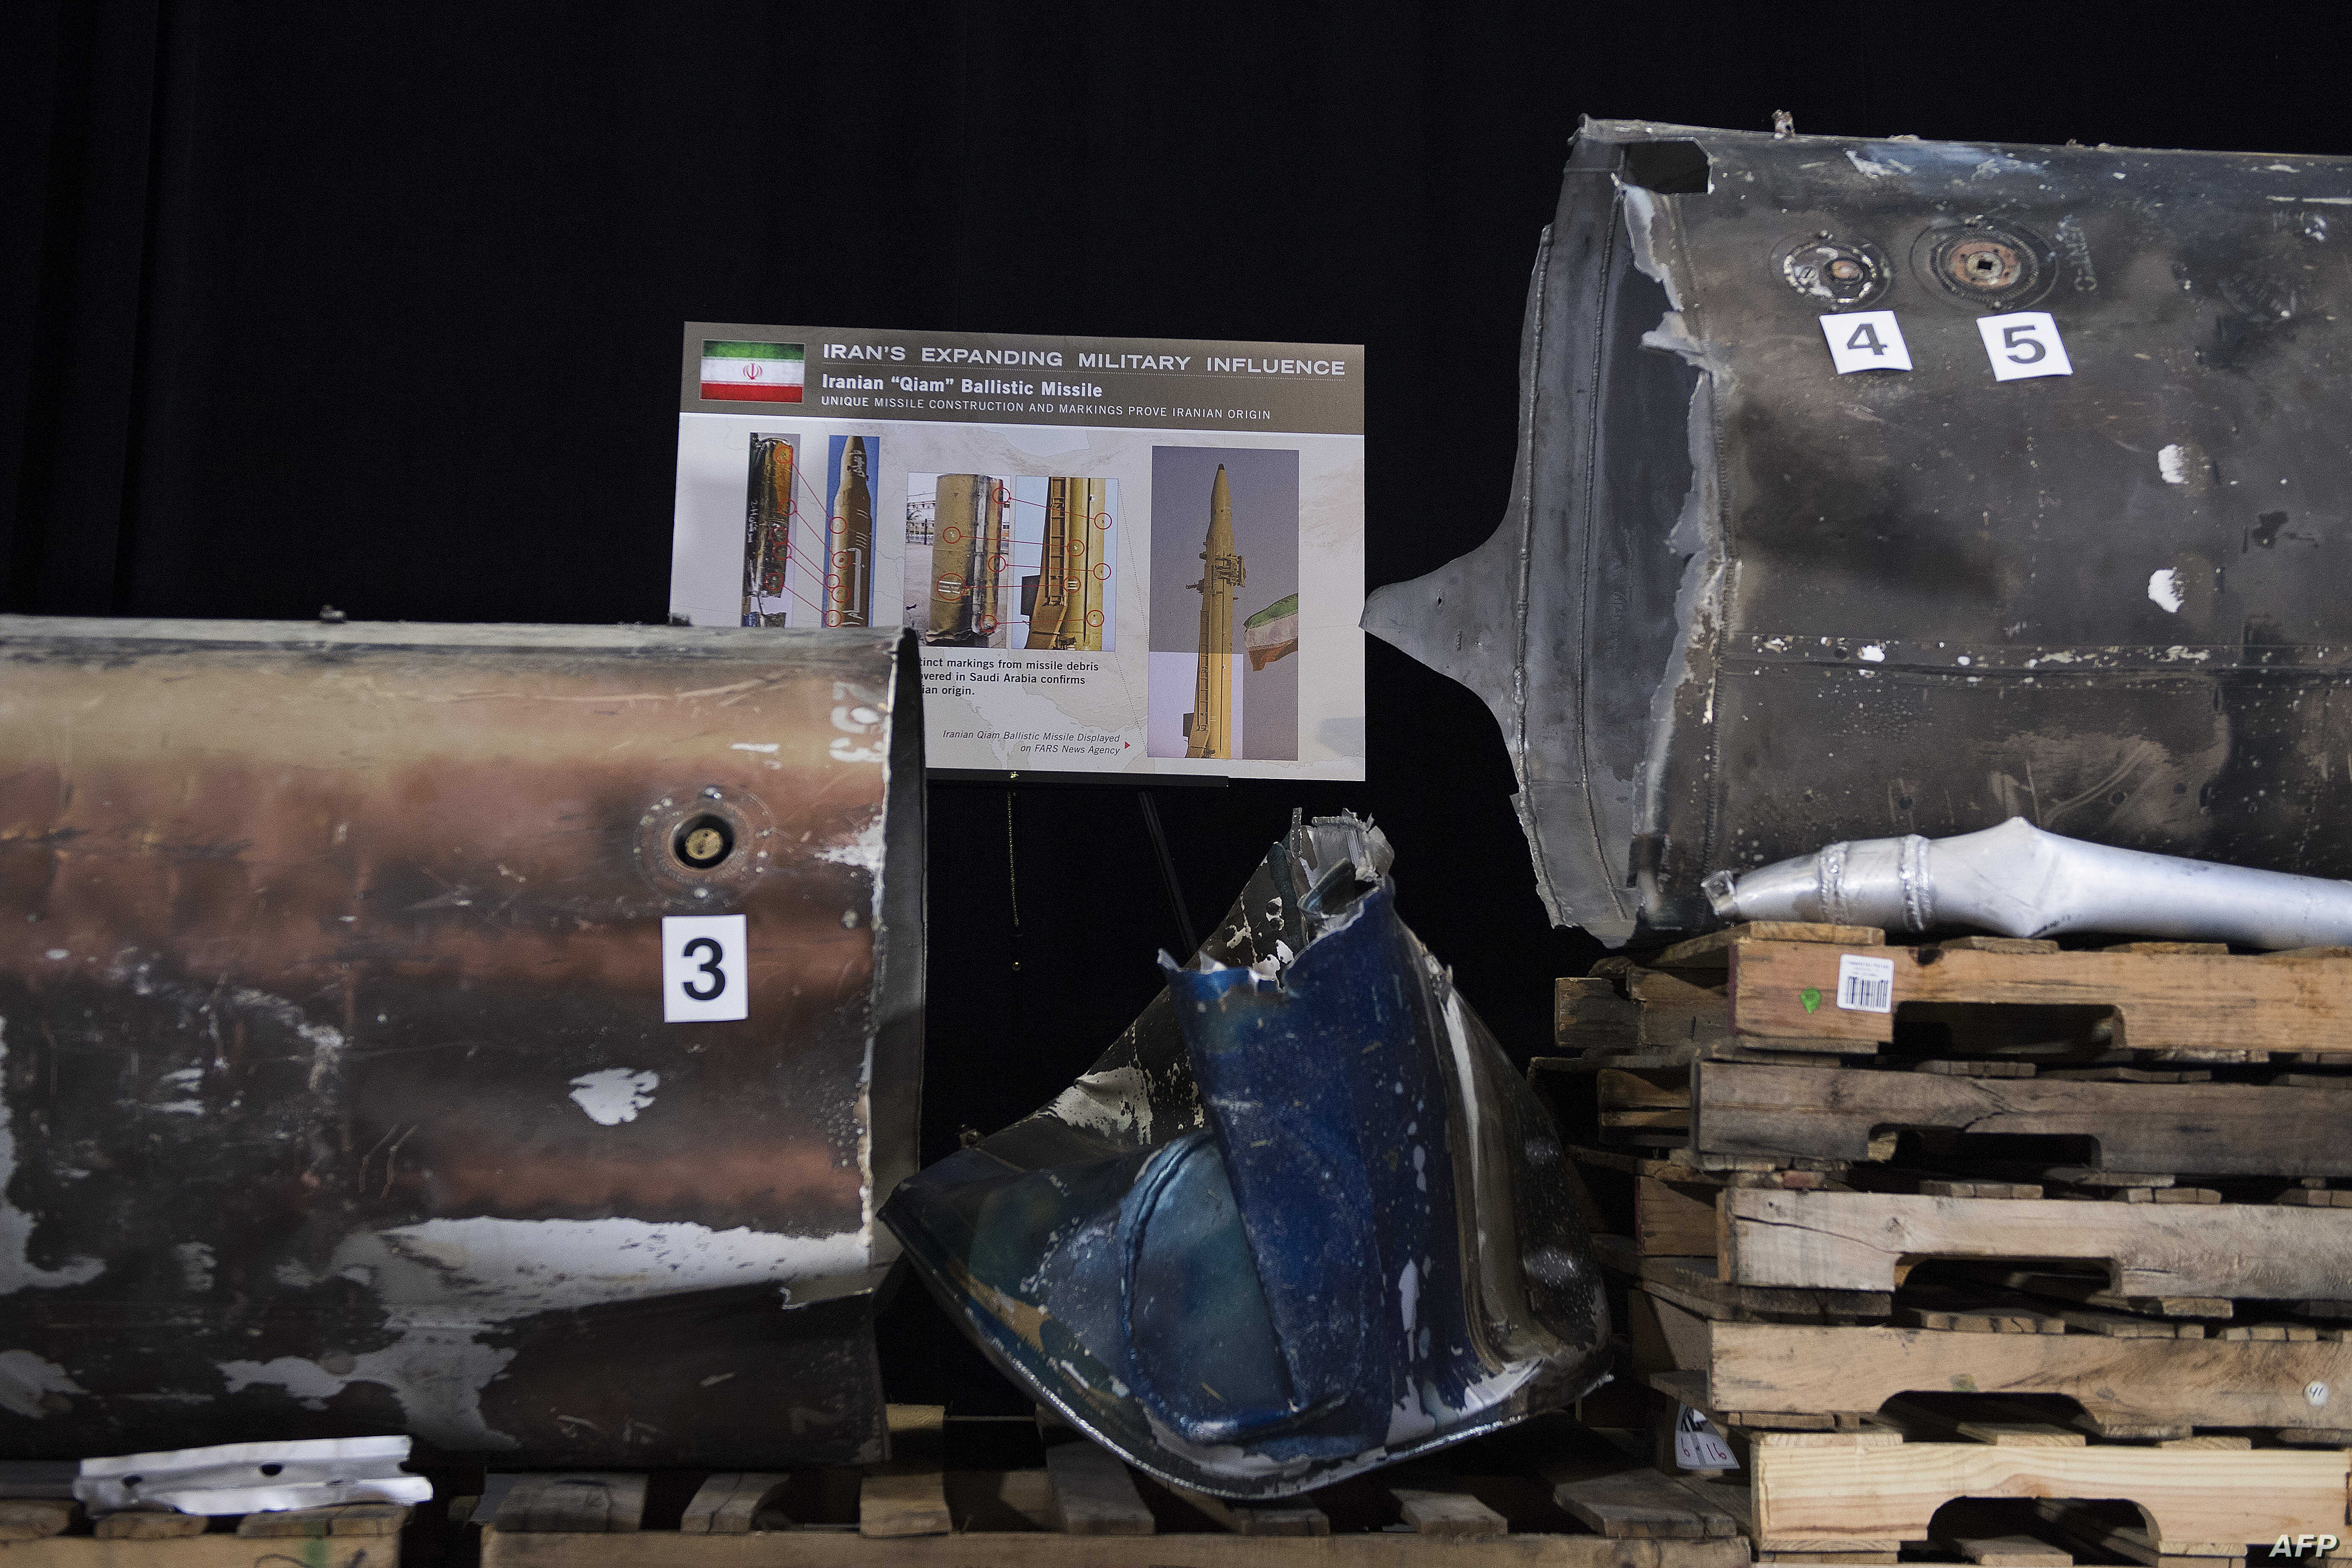 Pieces of an Iranian Qiam Ballistic Missile are on display after US Ambassador to UN Nikki Haley unveiled classified information intending to prove Iran provided the Houthi rebels in Yemen with arms, during a press conference, Dec. 14, 2017.